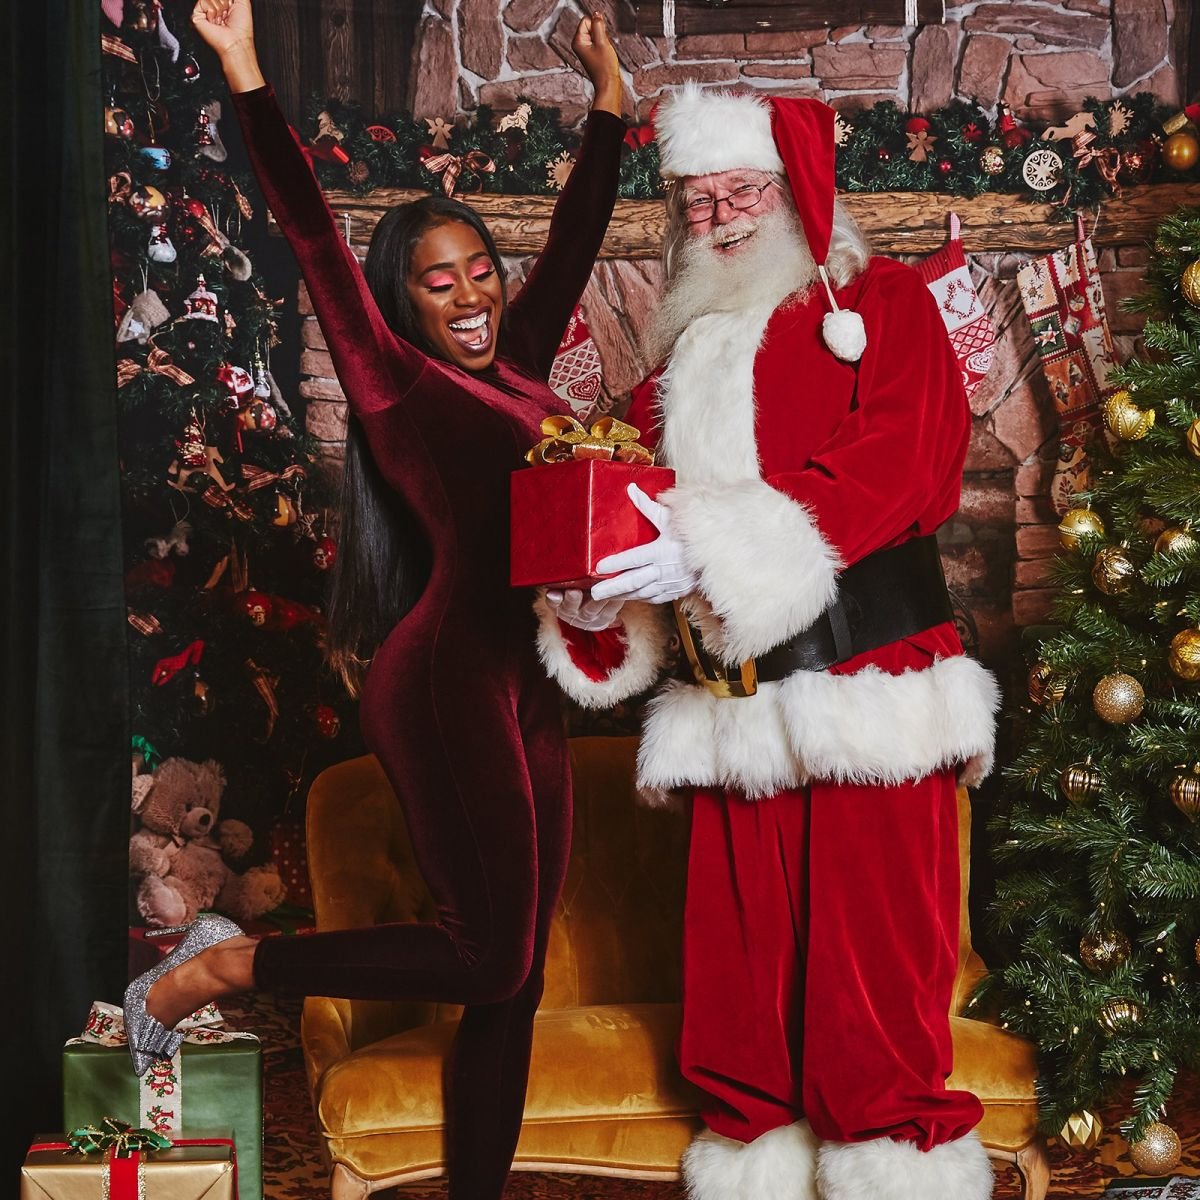 santa claus single lesbian women Download 14,730 sexy santa stock photos for free or amazingly low rates new users enjoy 60% off 88,225,527 stock photos online  fitness santa claus , show index finger and smile, on blue  and smile, on blue background beautiful girl wearing santa claus clothes  smiling woman with big and small gift women on dress and santa`s hat.